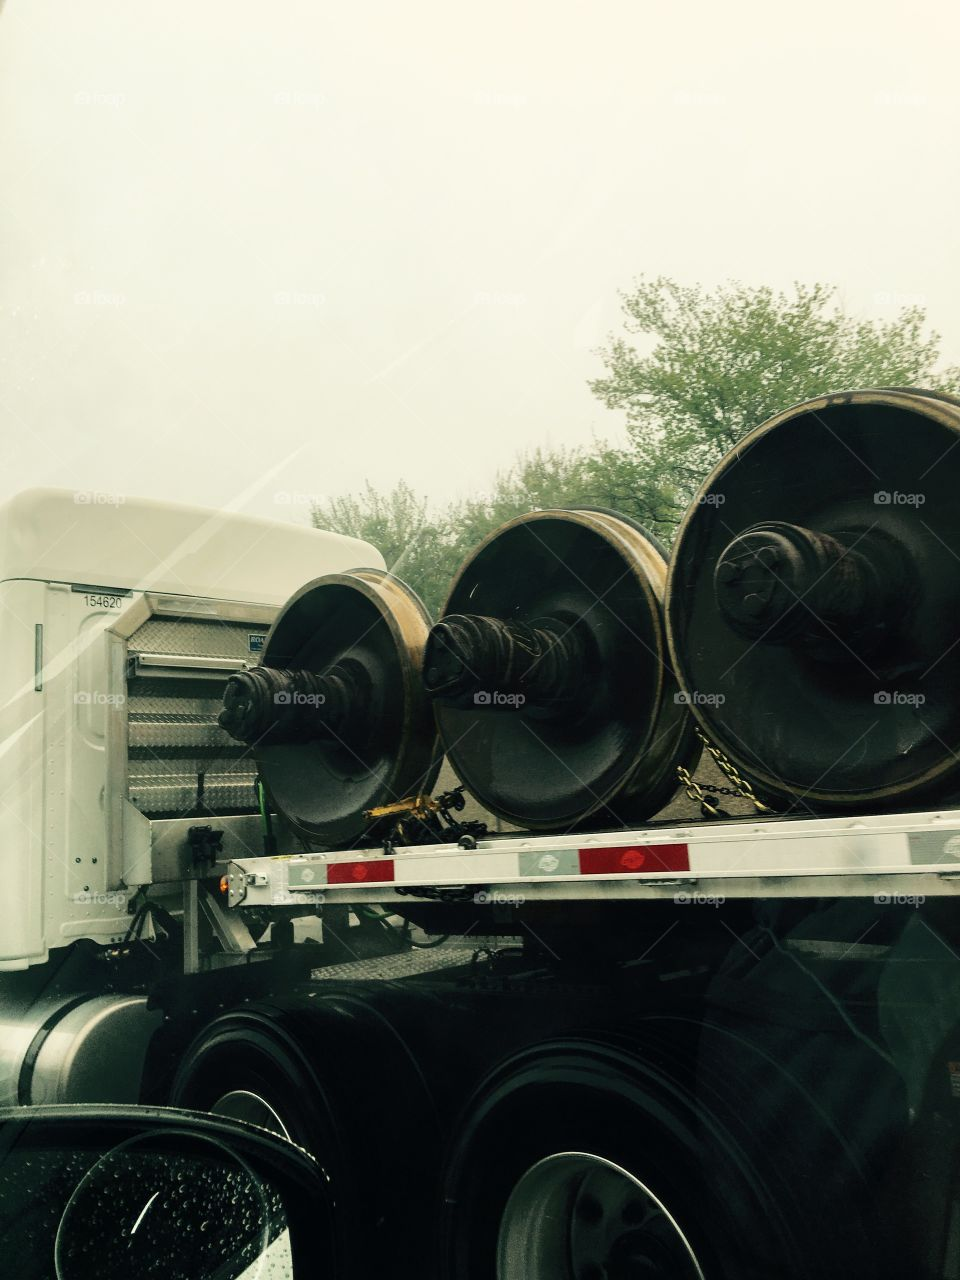 Truck carrying WHEELS FOR TRAINS